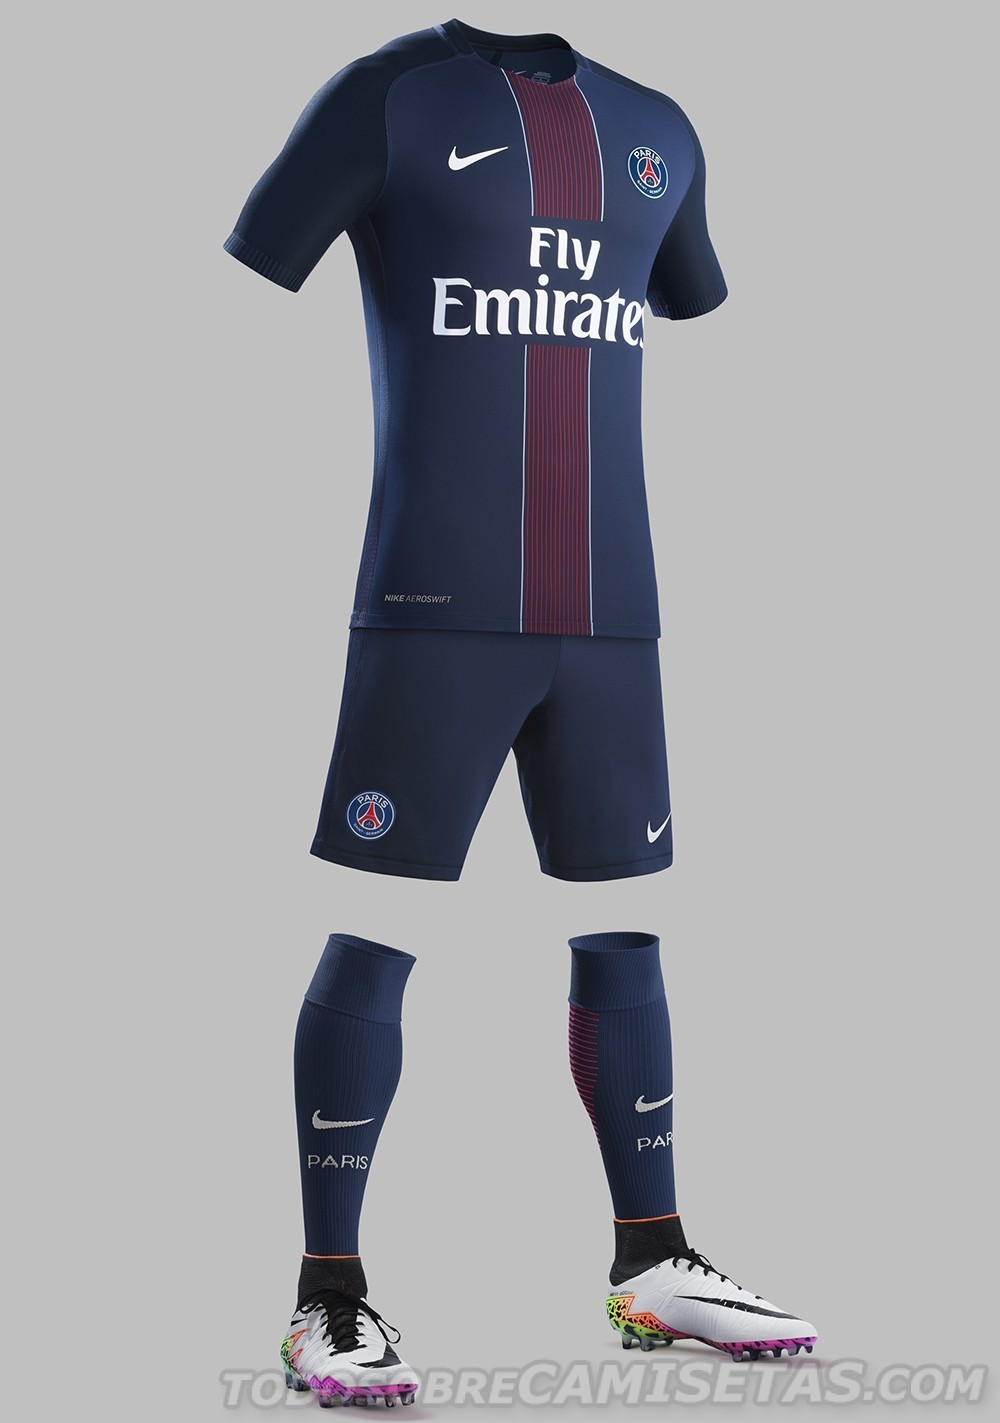 Paris-Saint-Germain-2016-17-NIKE-new-home-kit-3.jpg